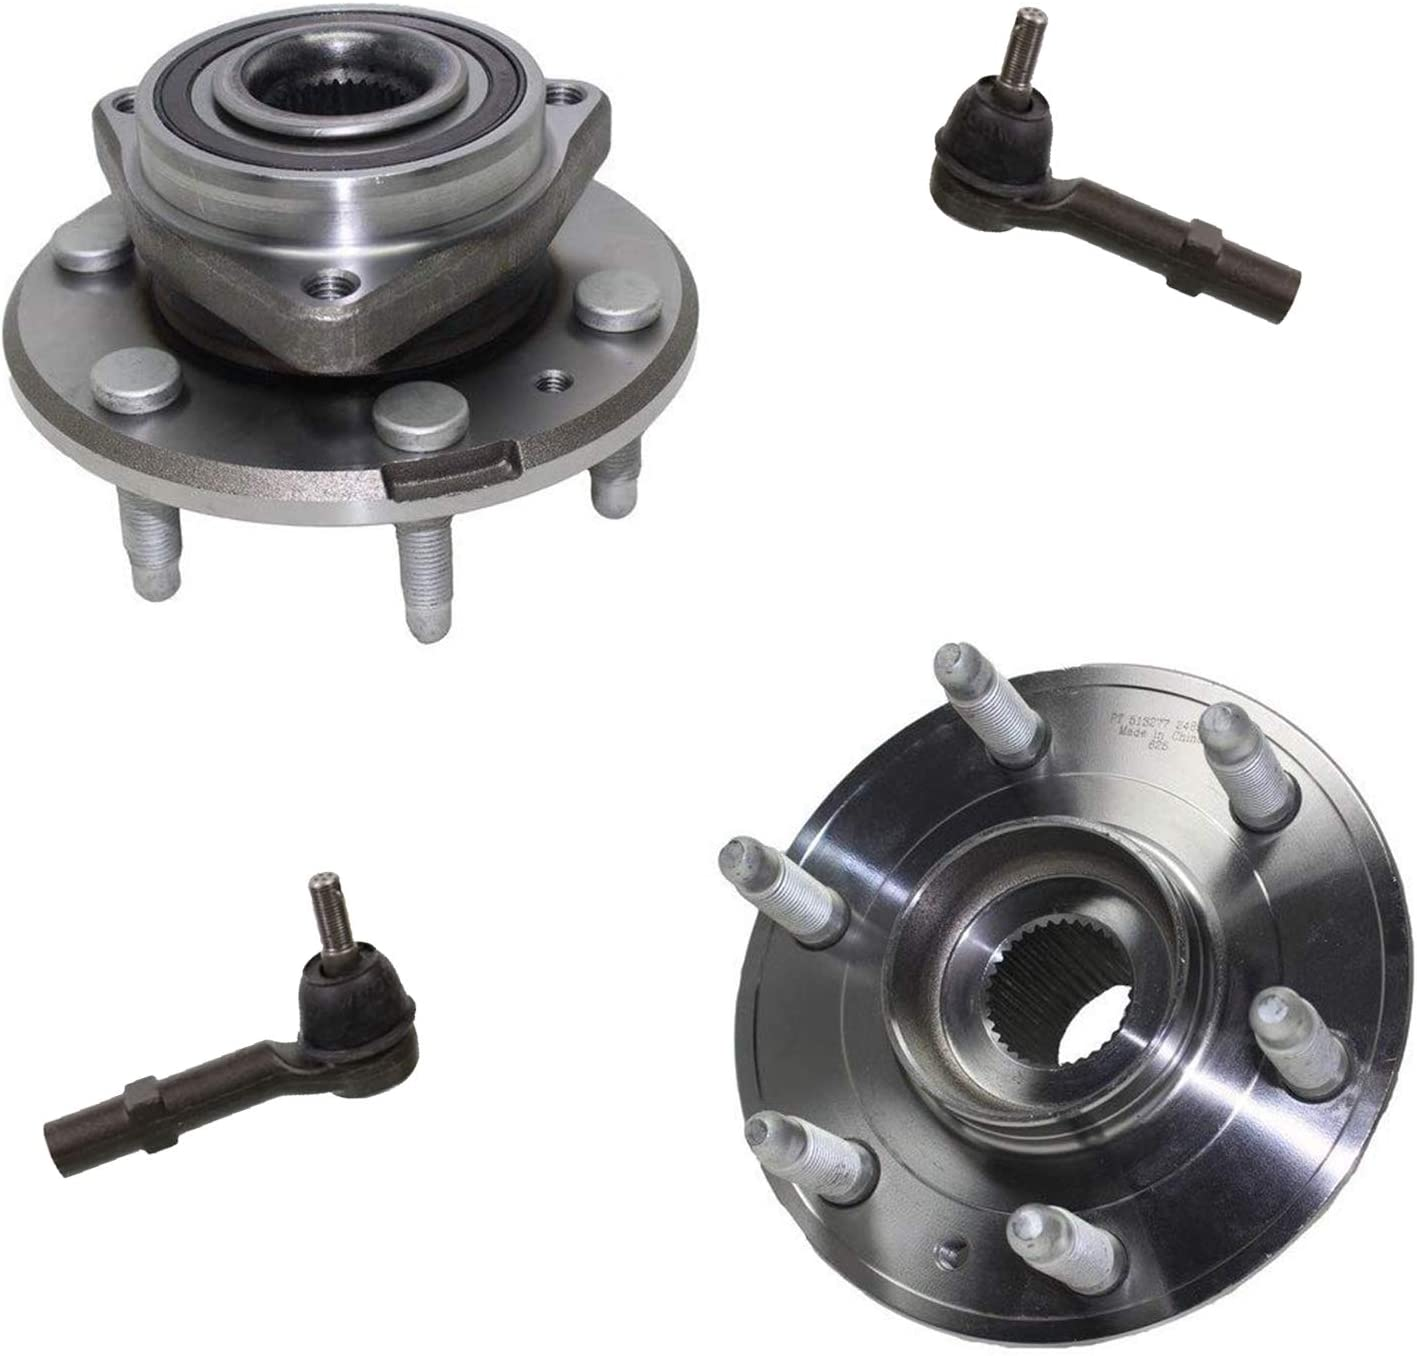 2007-2010 Saturn Outlook 2009-2015 Chevy Traverse 4pc Front or Rear Wheel Bearing /& Hubs w//ABS Detroit Axle Front Outer Tie Rods for 2008-2015 Buick Enclave - - 2007-2015 GMC Acadia -